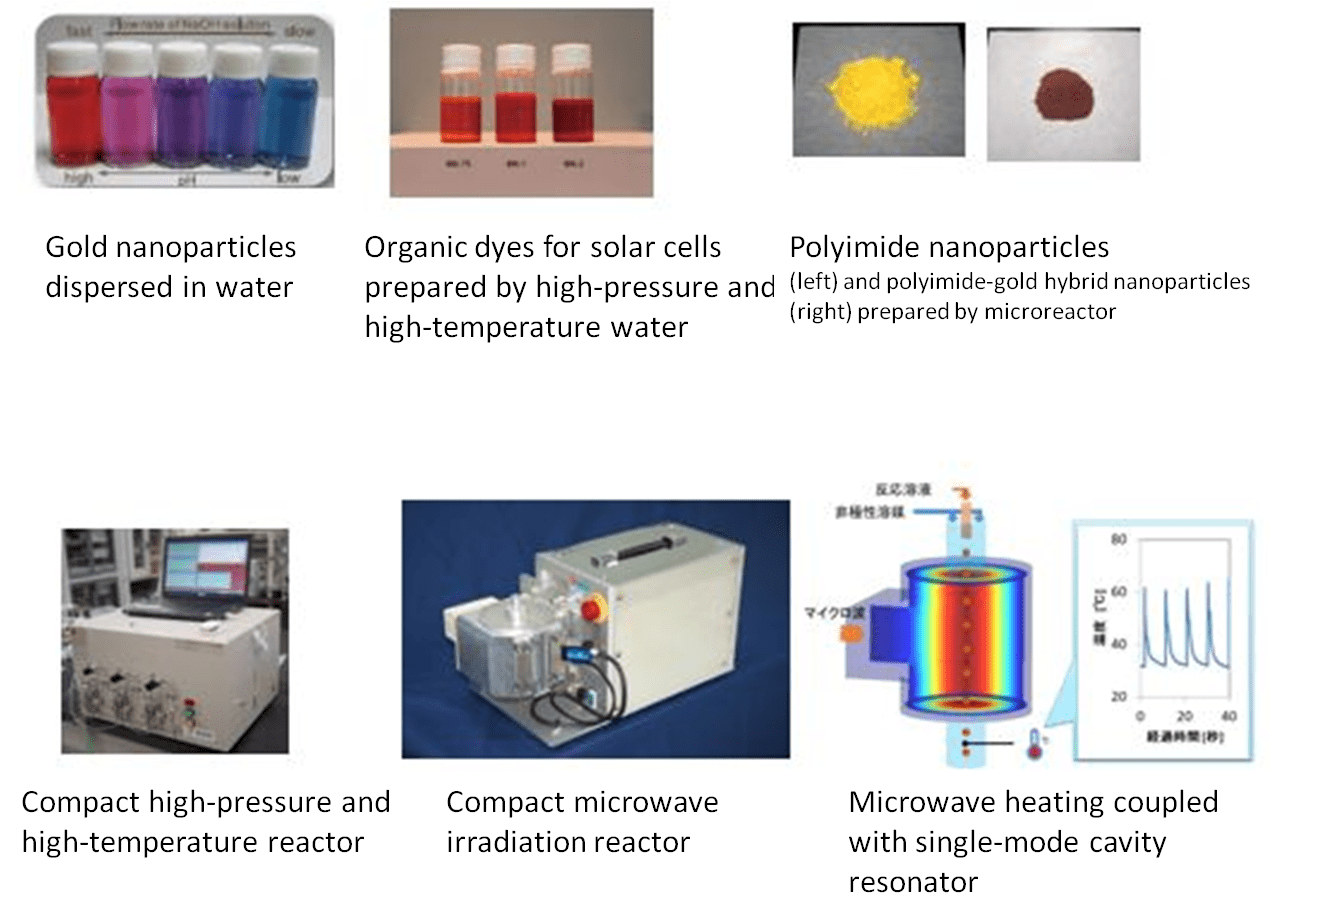 hight resolution of  new energy efficient and affordable industrial chemical process applied for the various material syntheses under the high pressure and high temperature